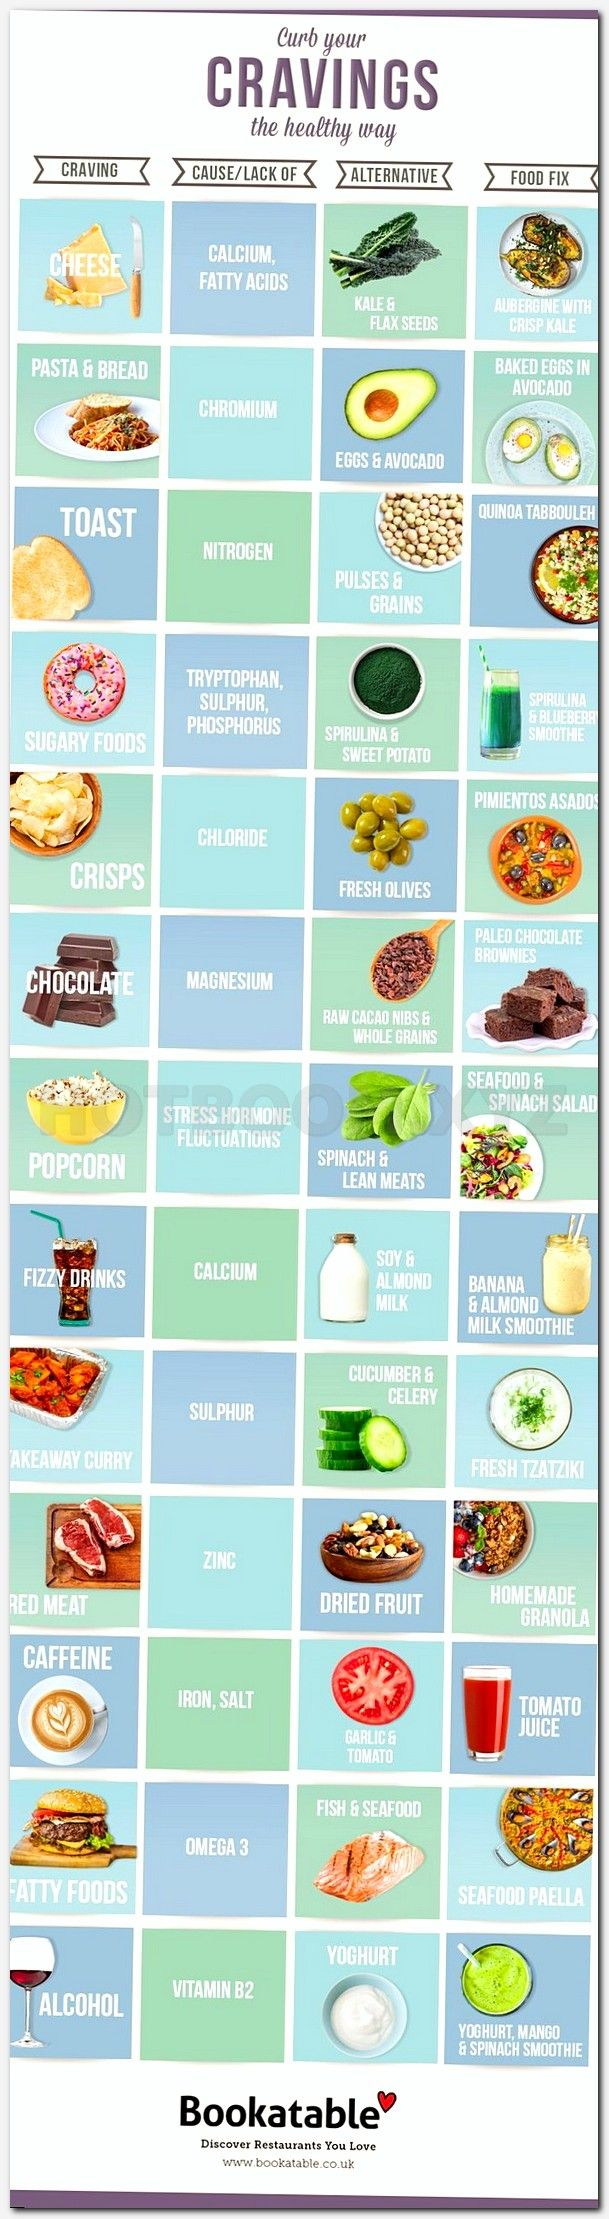 How to make a protein shake without protein powder to lose weight